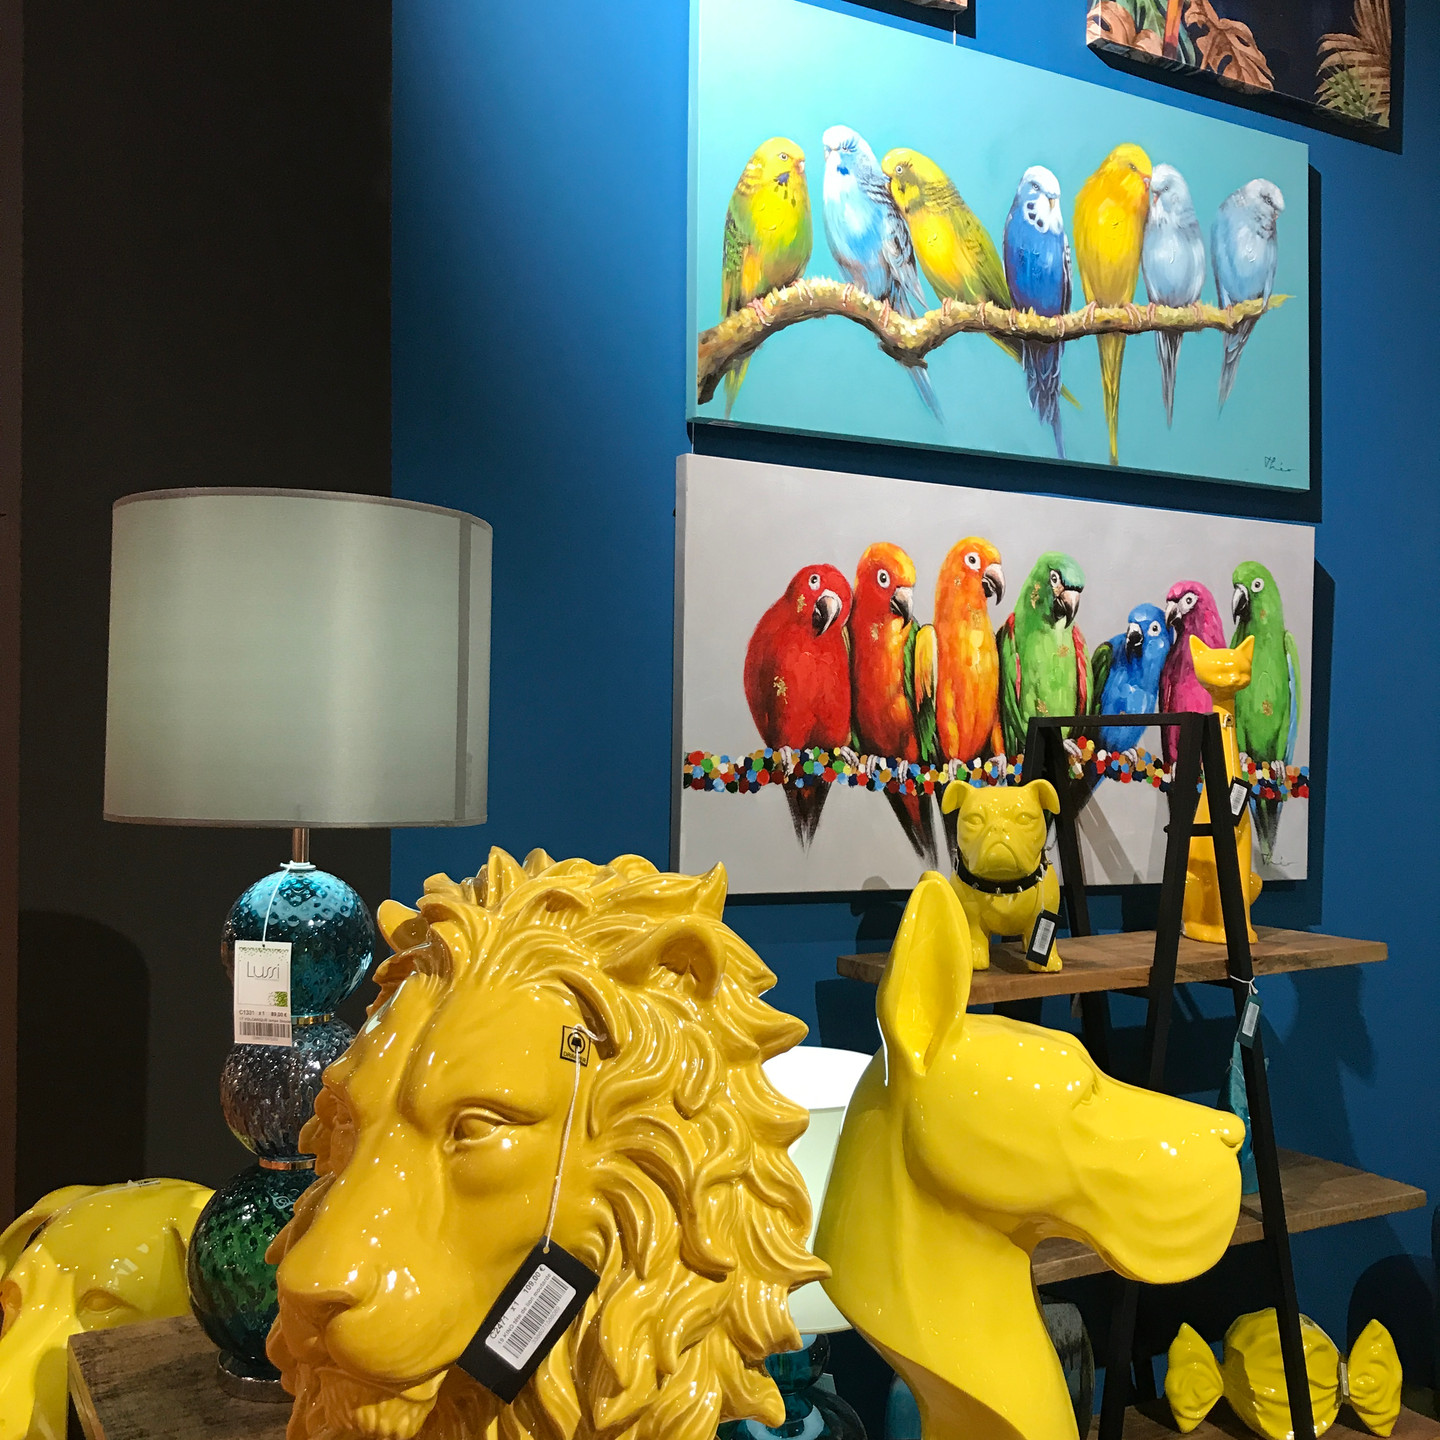 Yellow Lion and Dog Head Sculptures with Bright Blue Wall and Brightly Colored Parrot Artwork